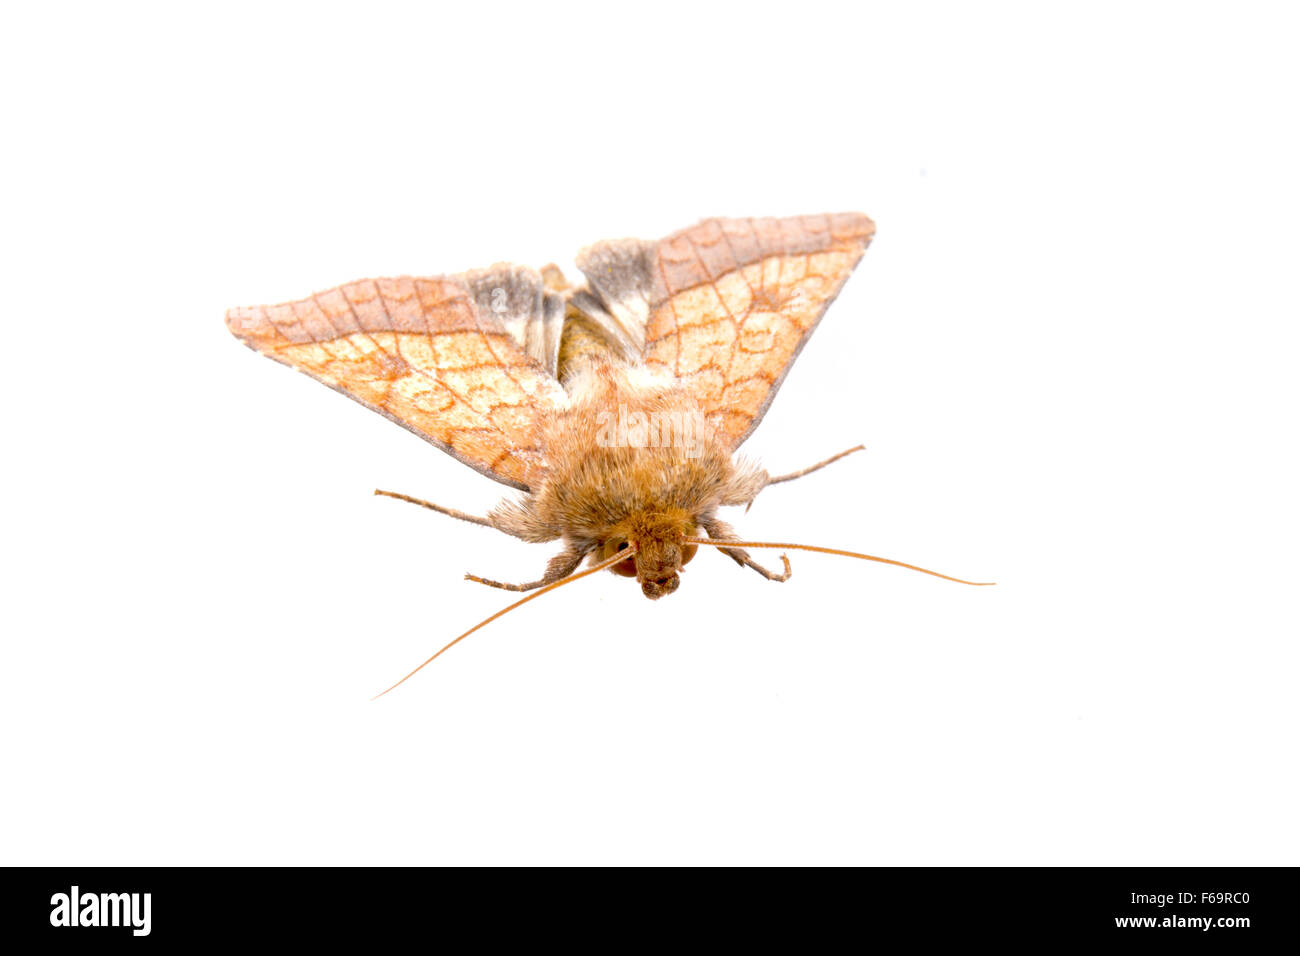 Clothes Moth Stock Photos Amp Clothes Moth Stock Images Alamy